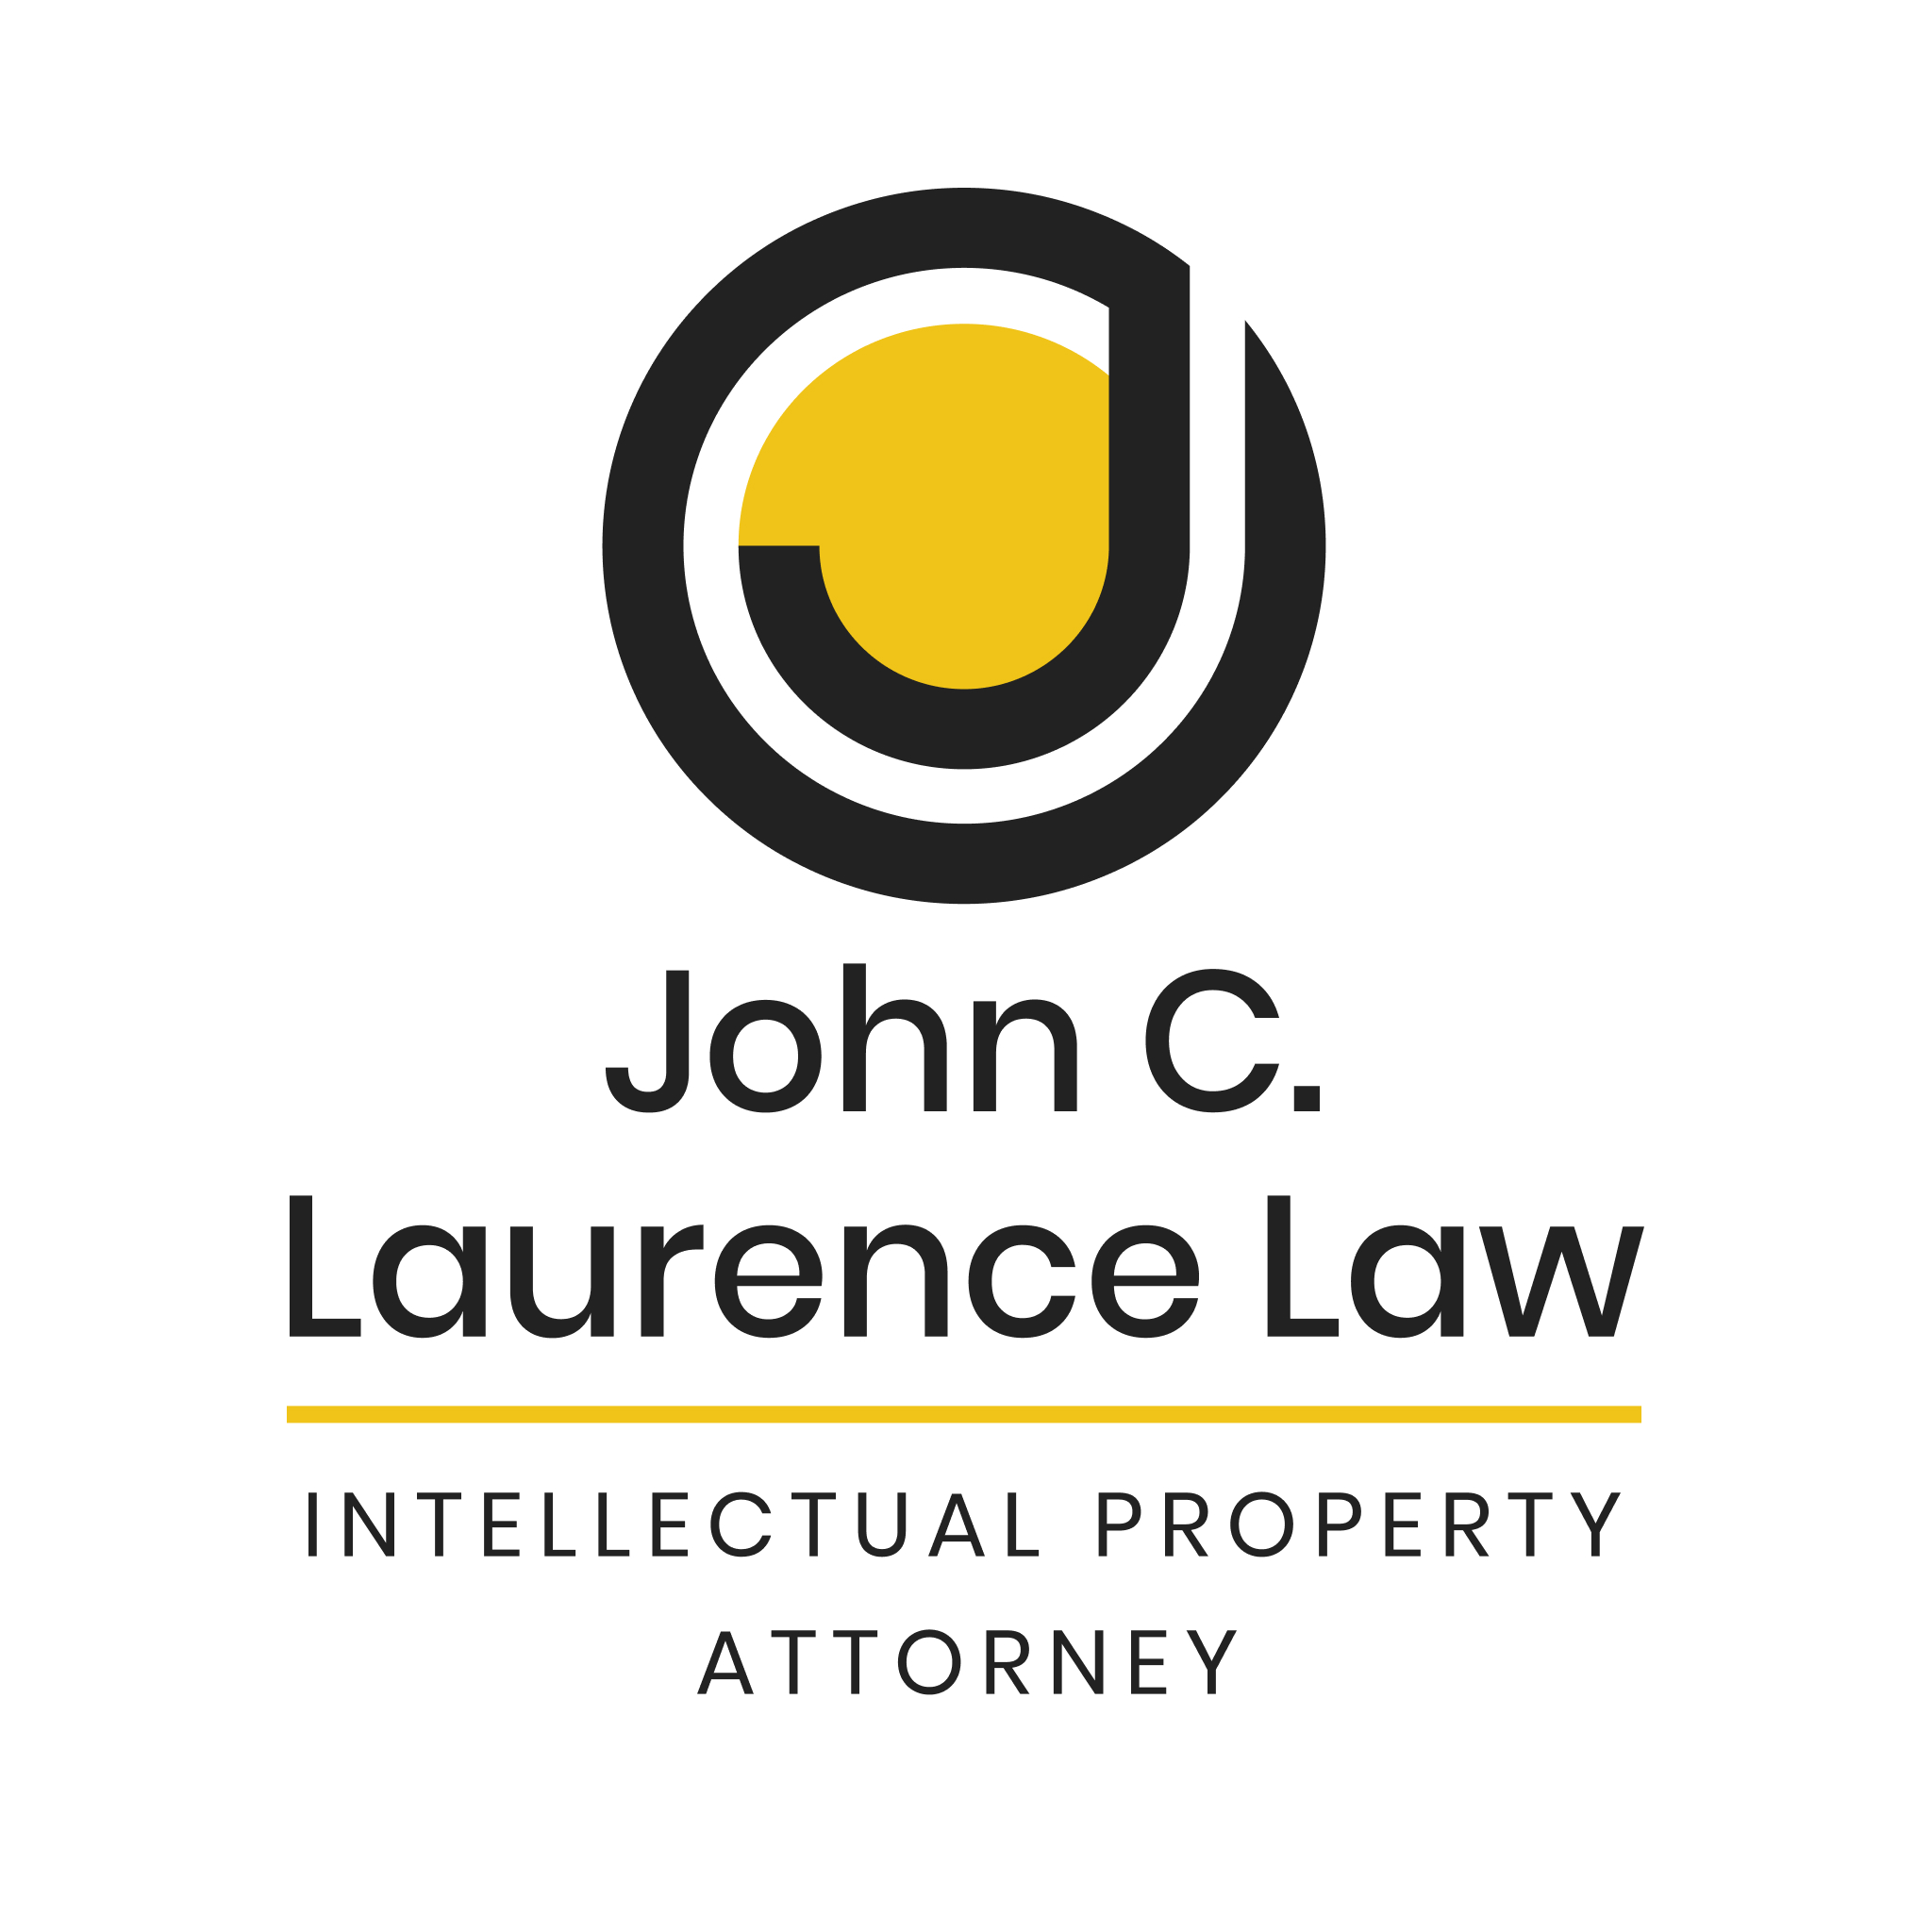 John C. Laurence Law, PLLC Profile Picture